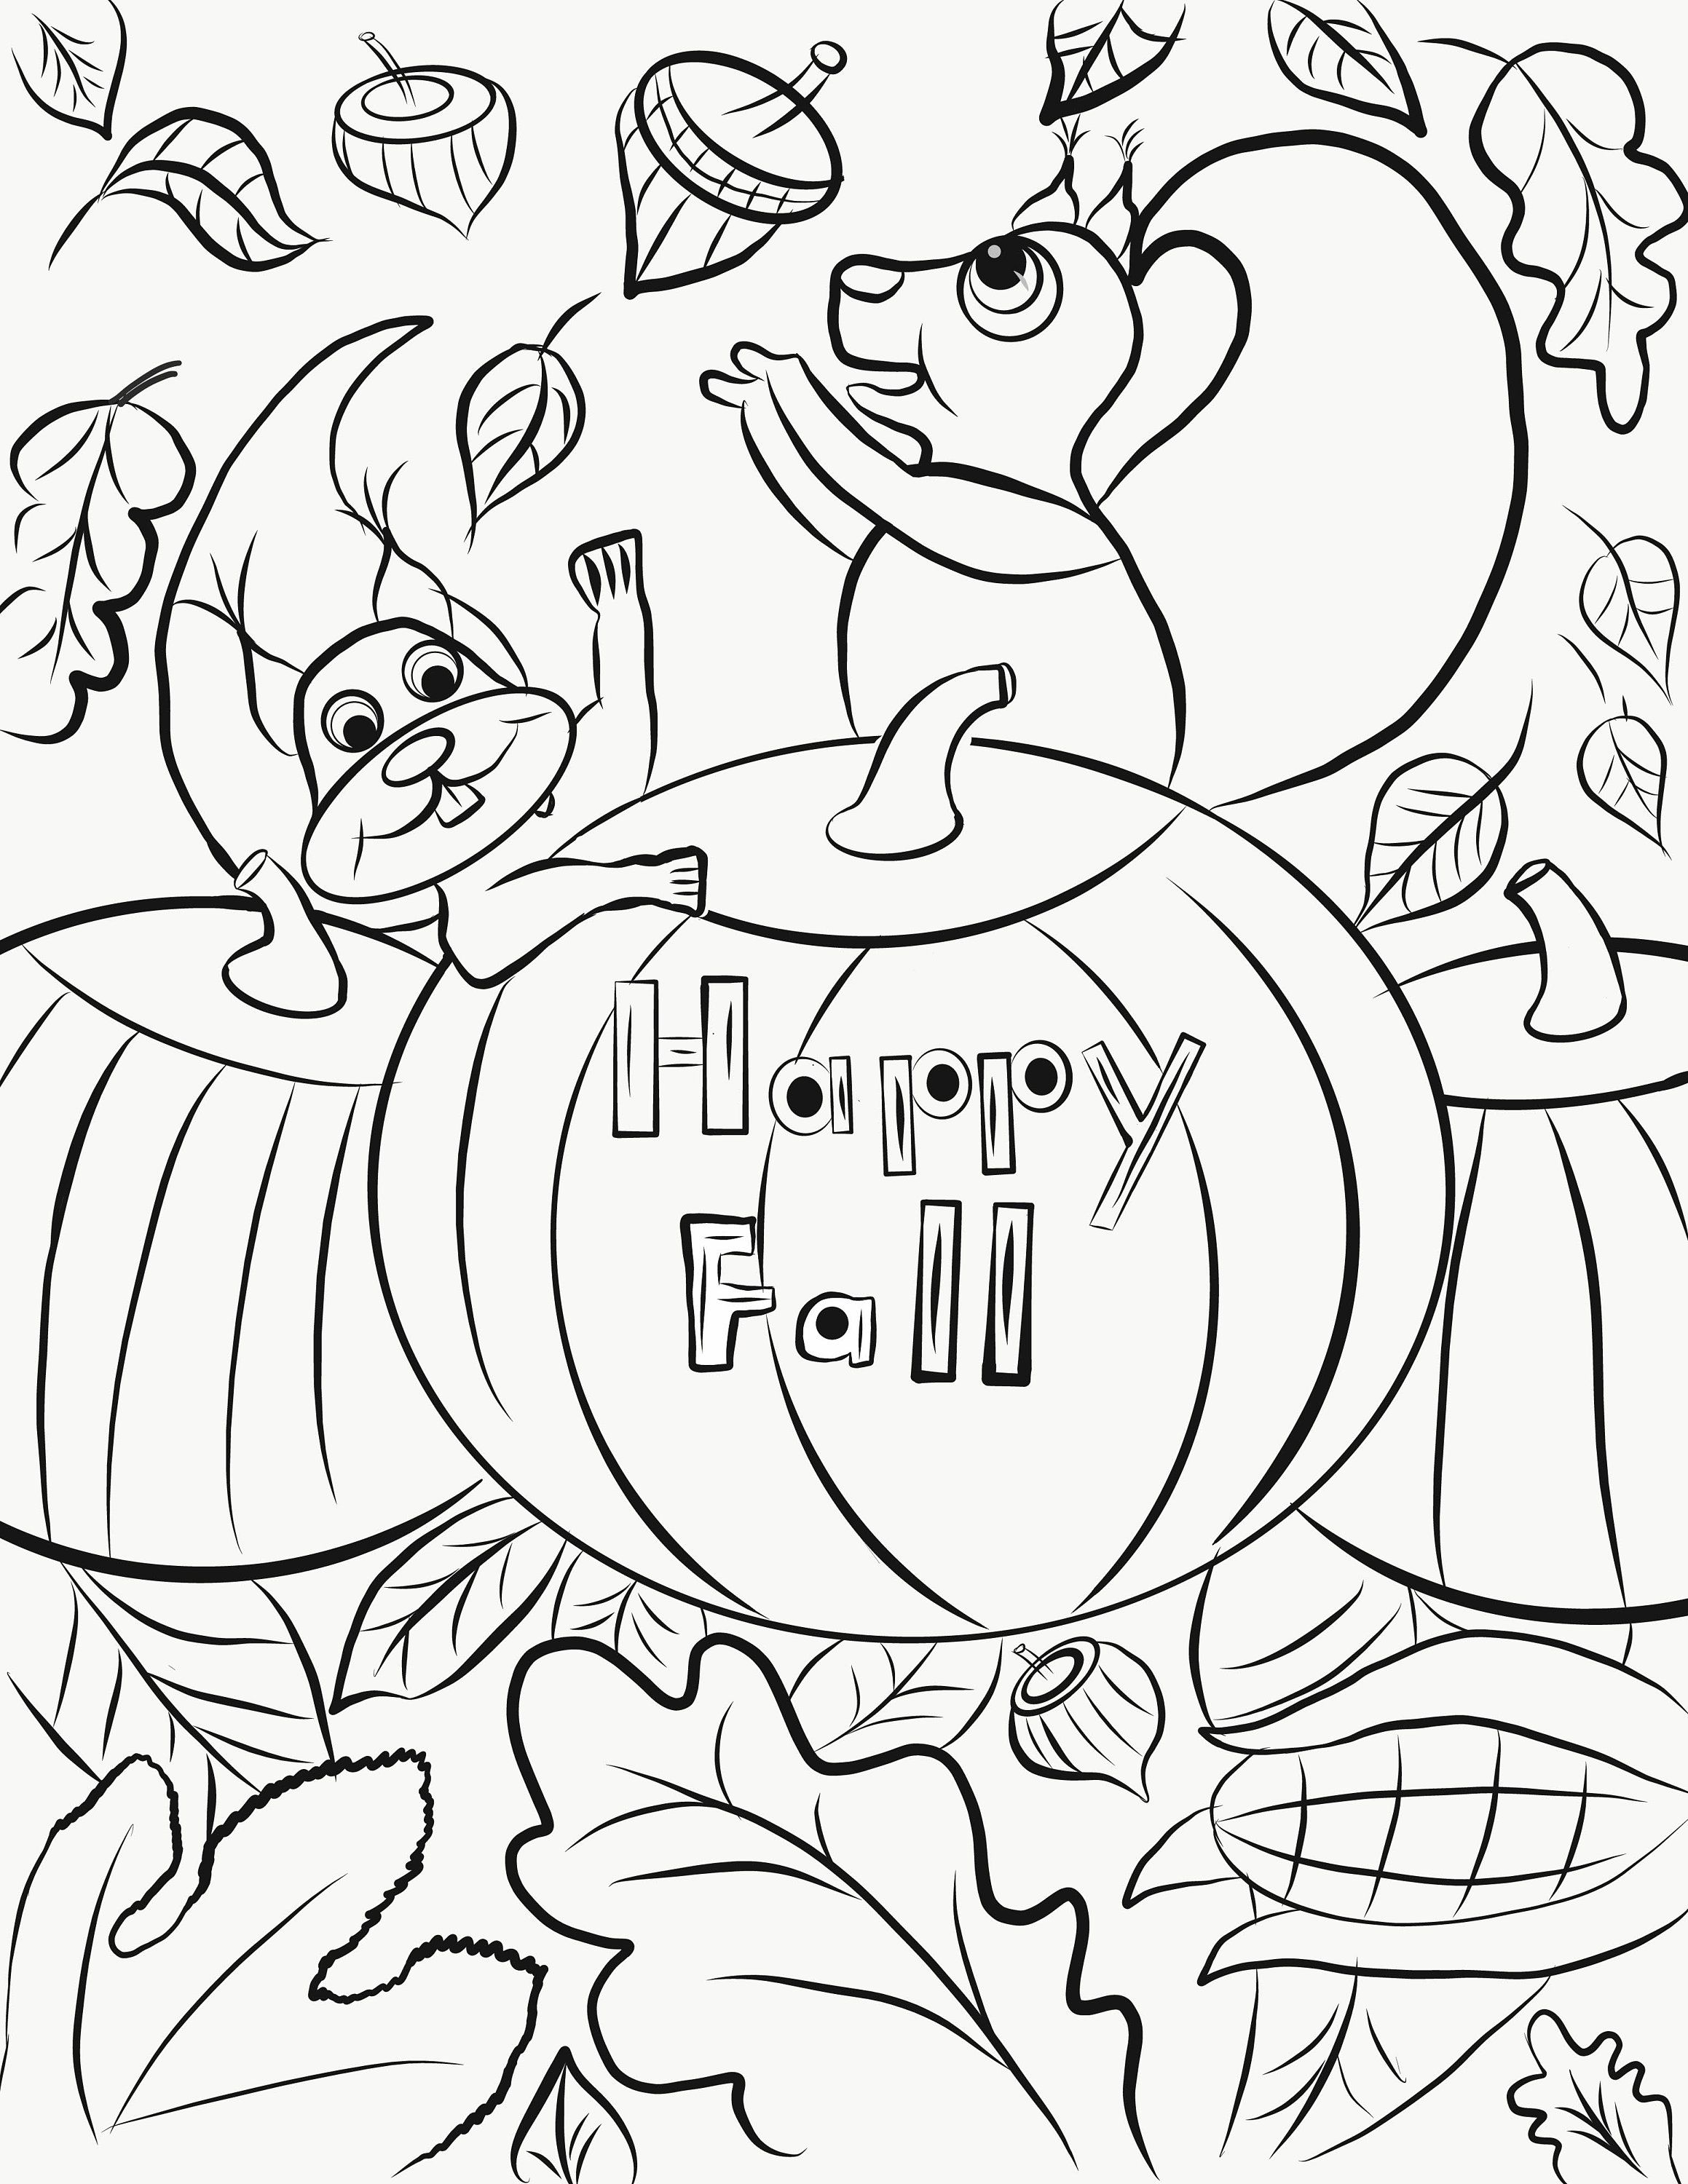 Happy Fall Coloring Page Printable Artwork Pdf Any Age Etsy Fall Coloring Pages Free Thanksgiving Coloring Pages Fall Coloring Sheets